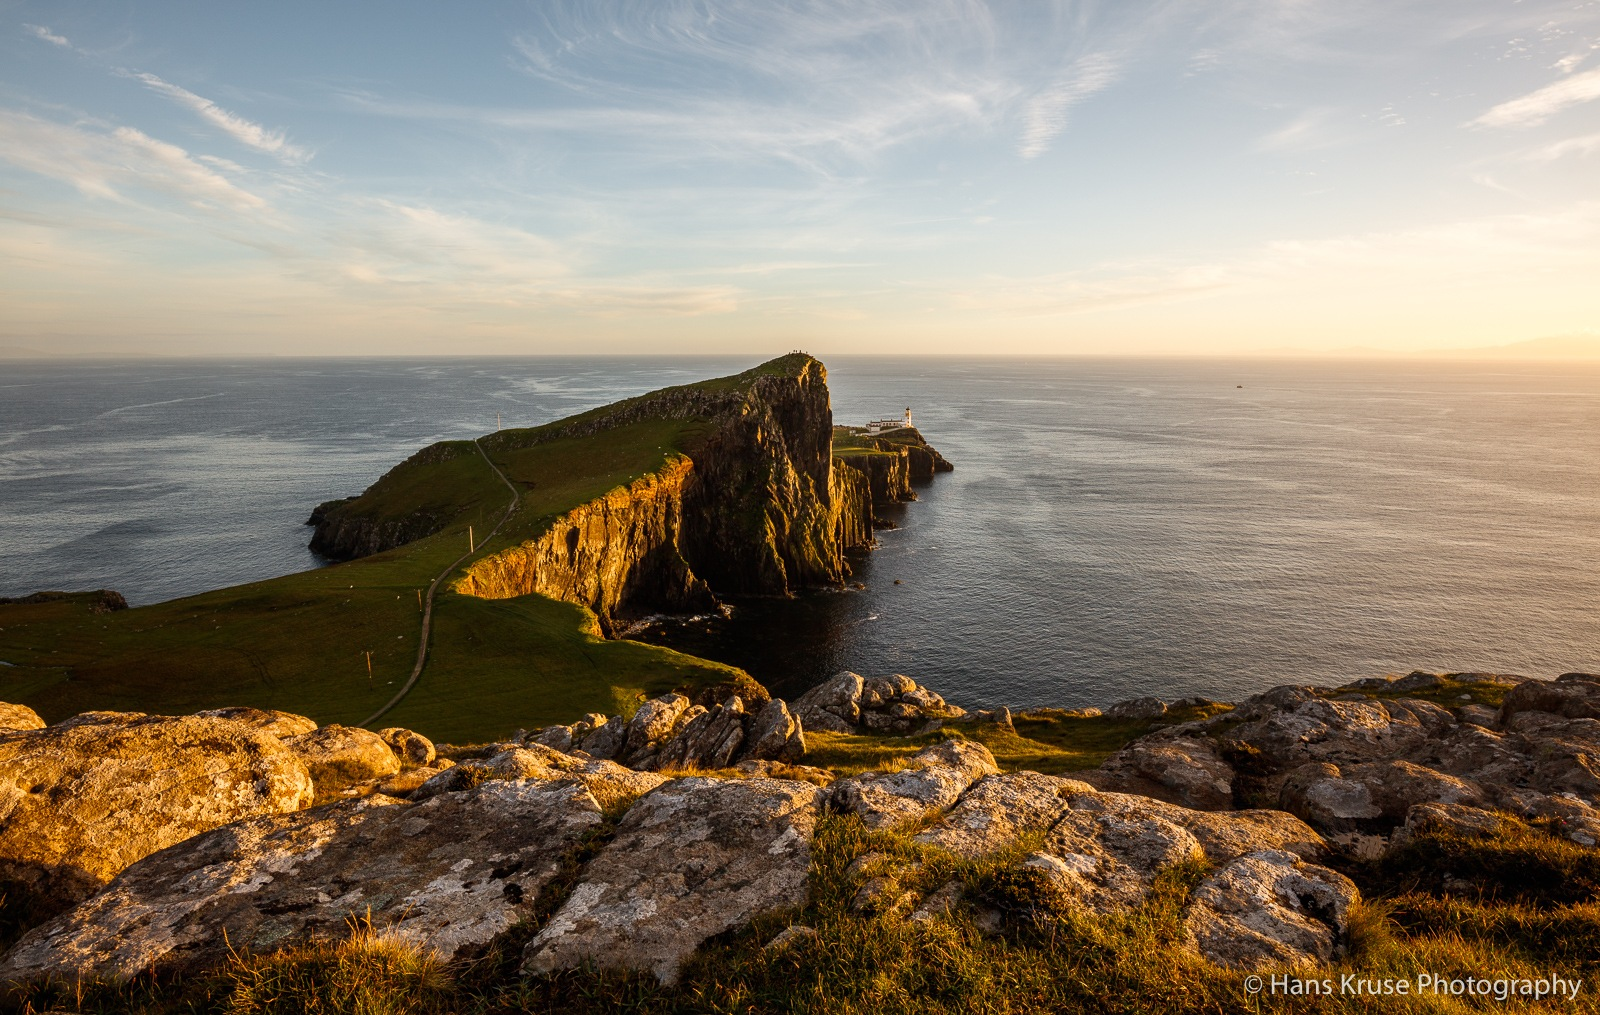 Neist Point at sunset by Hans Kruse